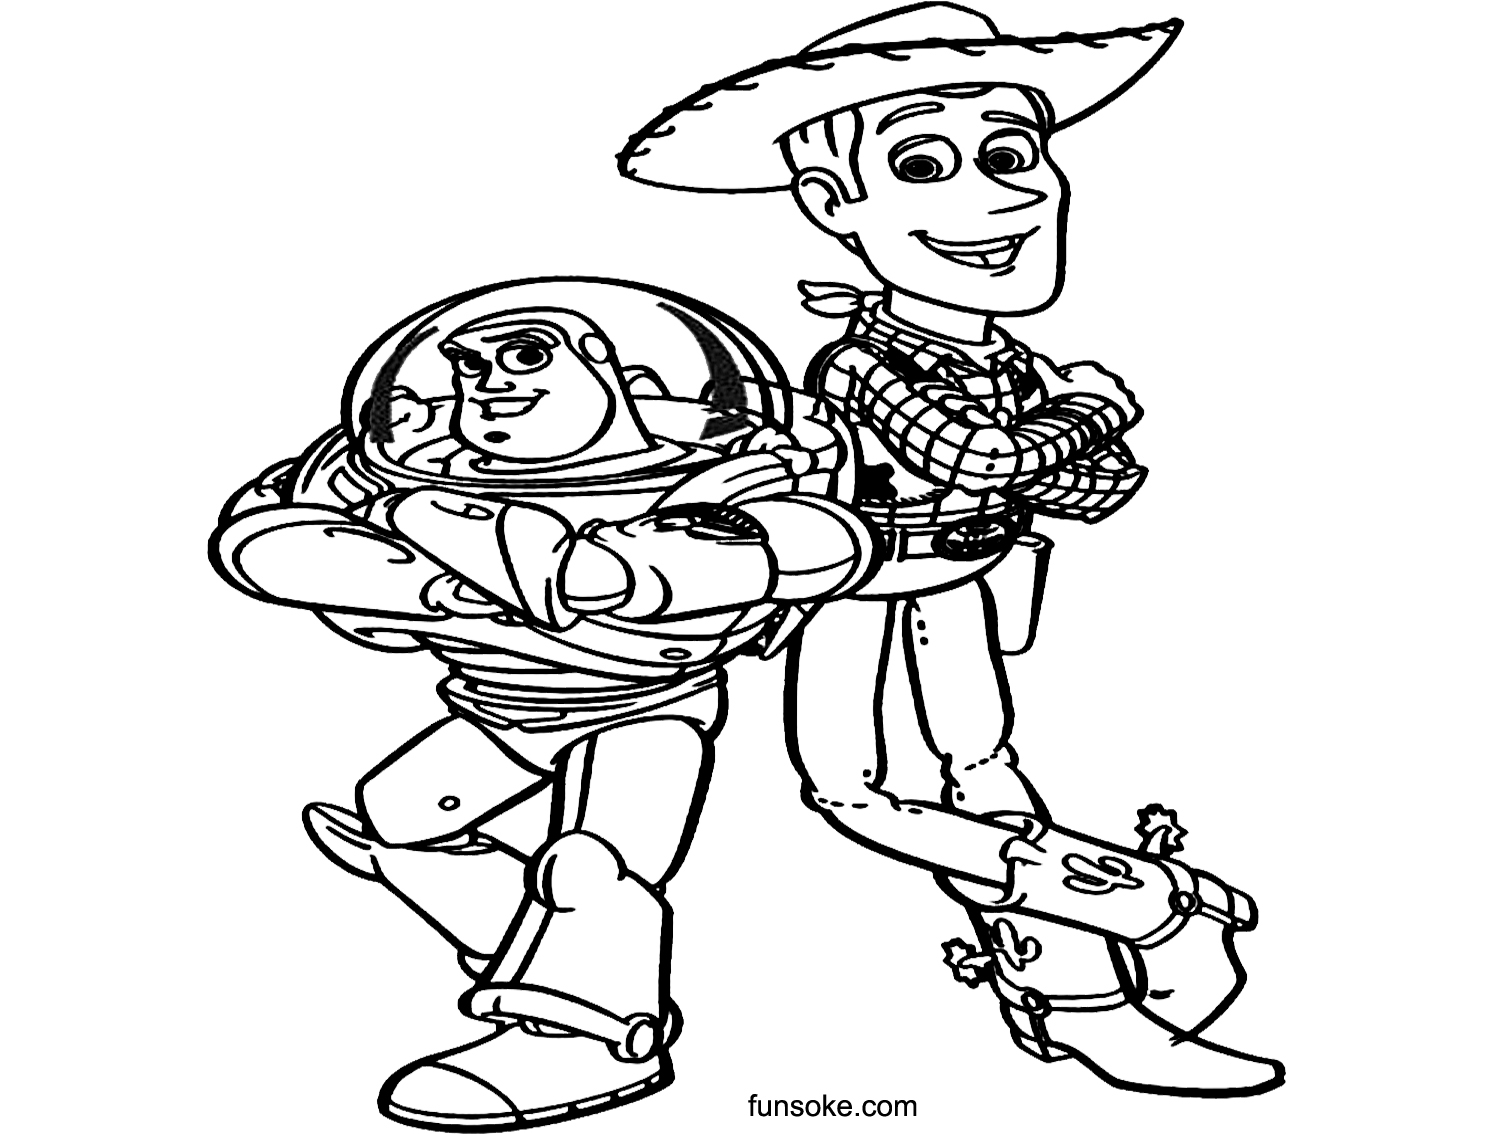 coloring pages toy story toy story 04 342 at printable coloring pages pages story coloring toy